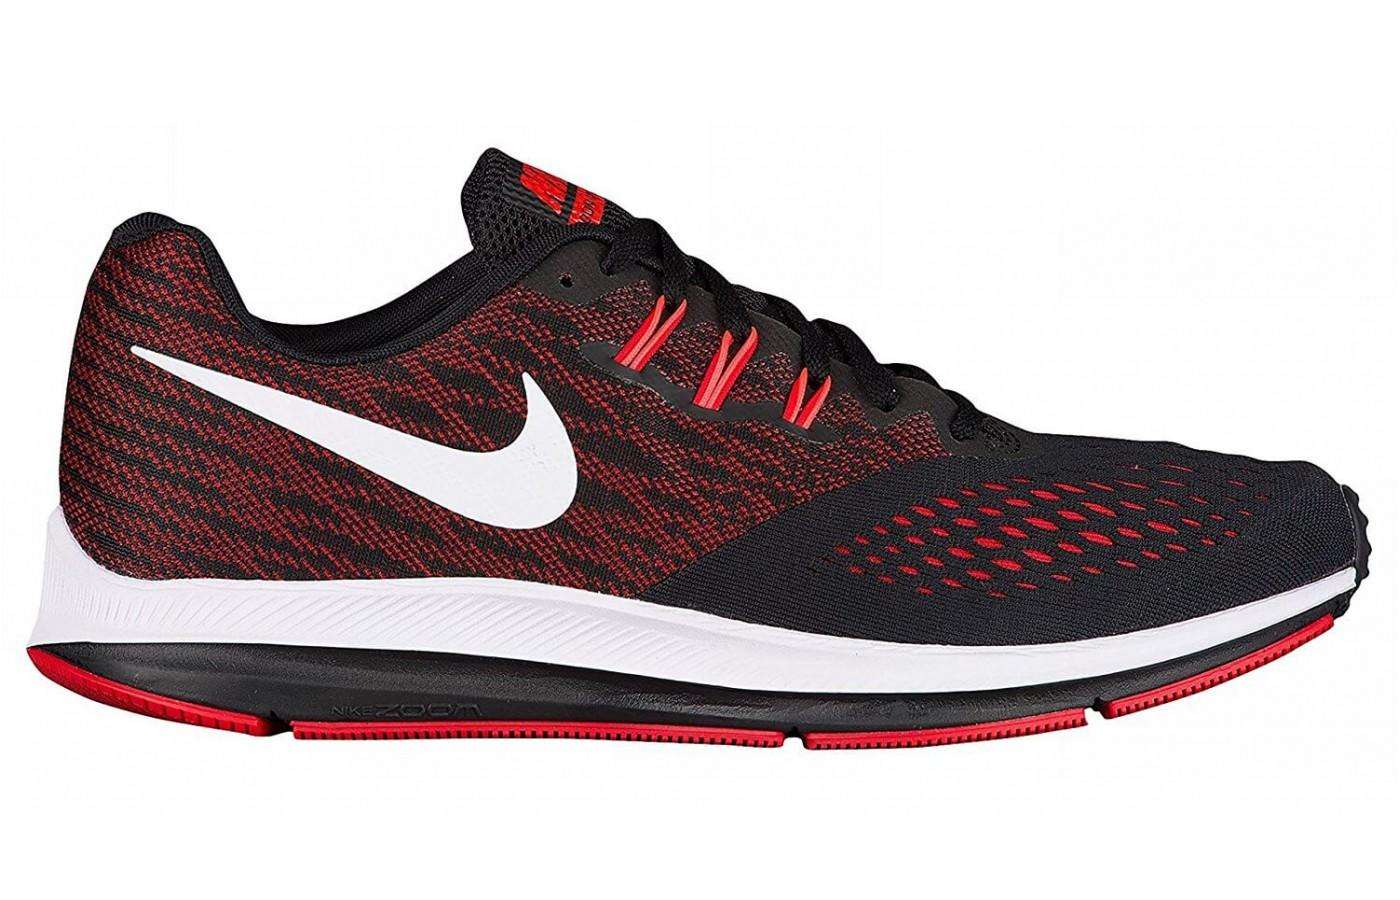 reputable site 39f1e 76422 The Nike Zoom Winflow 4 is lightweight and breathable.